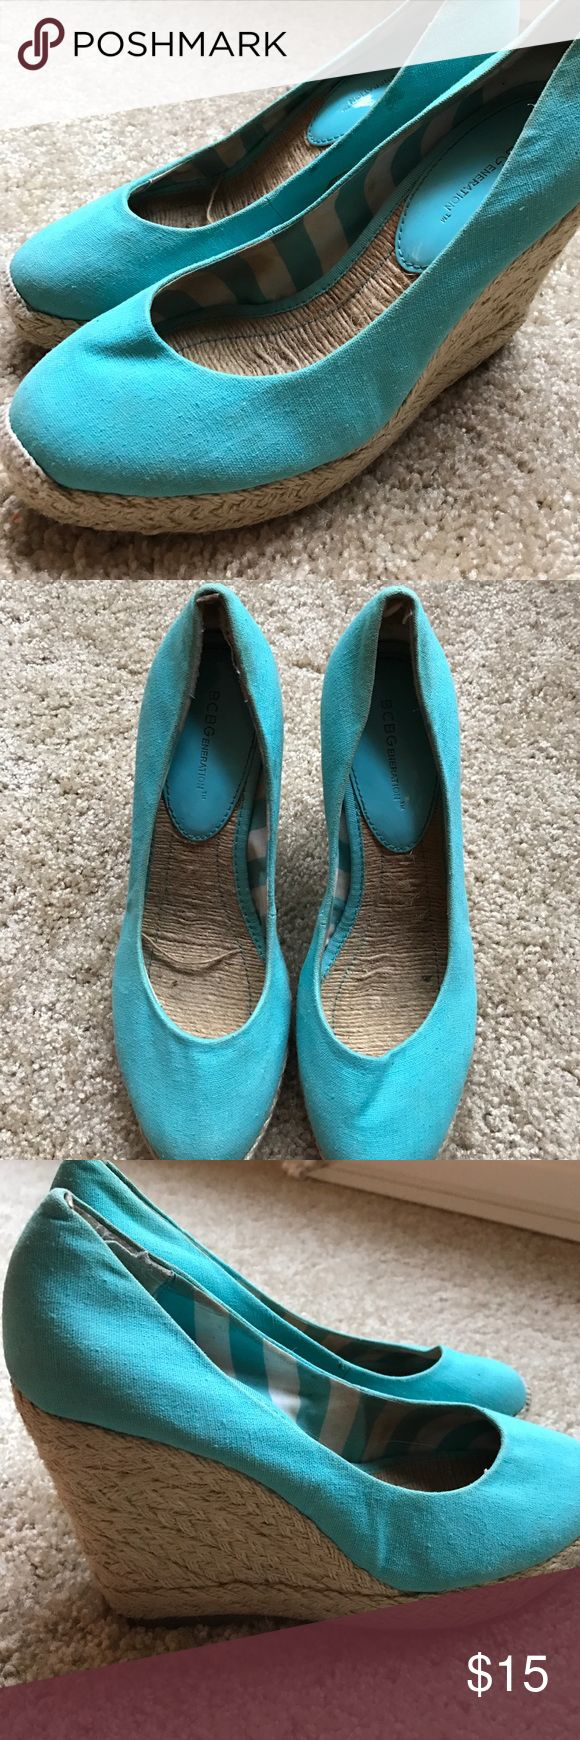 Teal BCBGeneration wedges Cute teal wedges good for spring and summer BCBGeneration Shoes Wedges